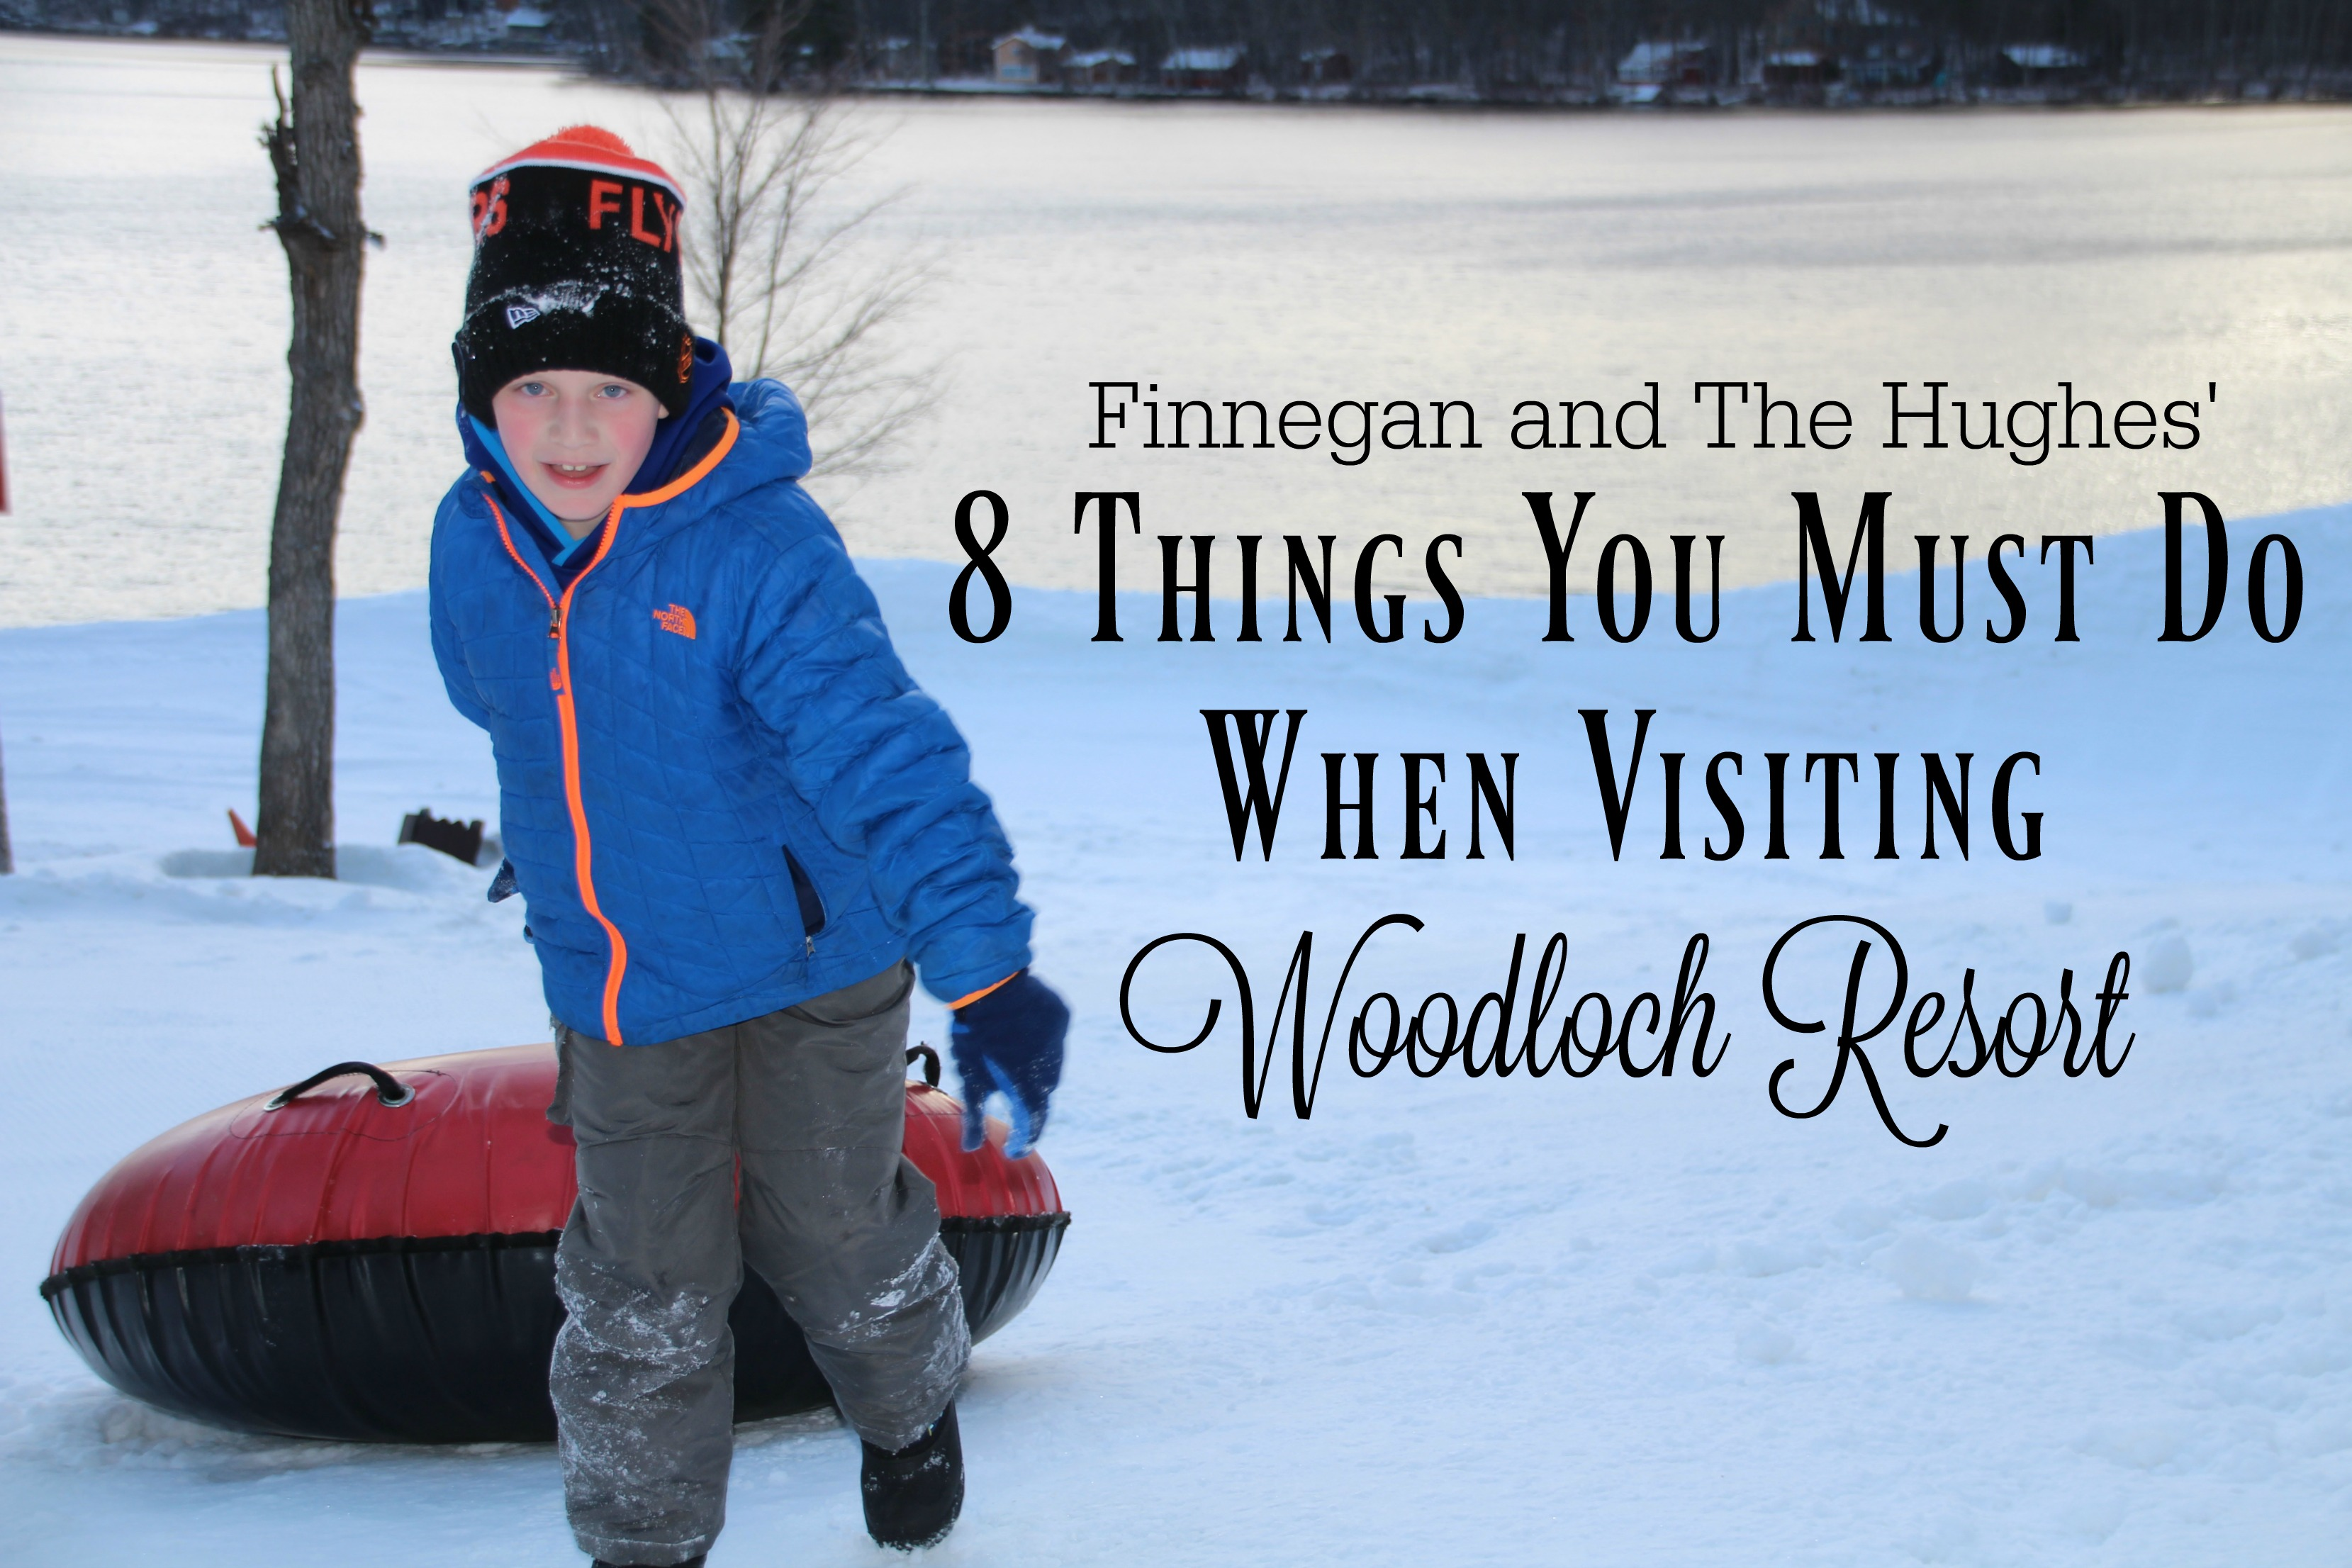 8 Things You Must Do When Visiting Woodloch Resort